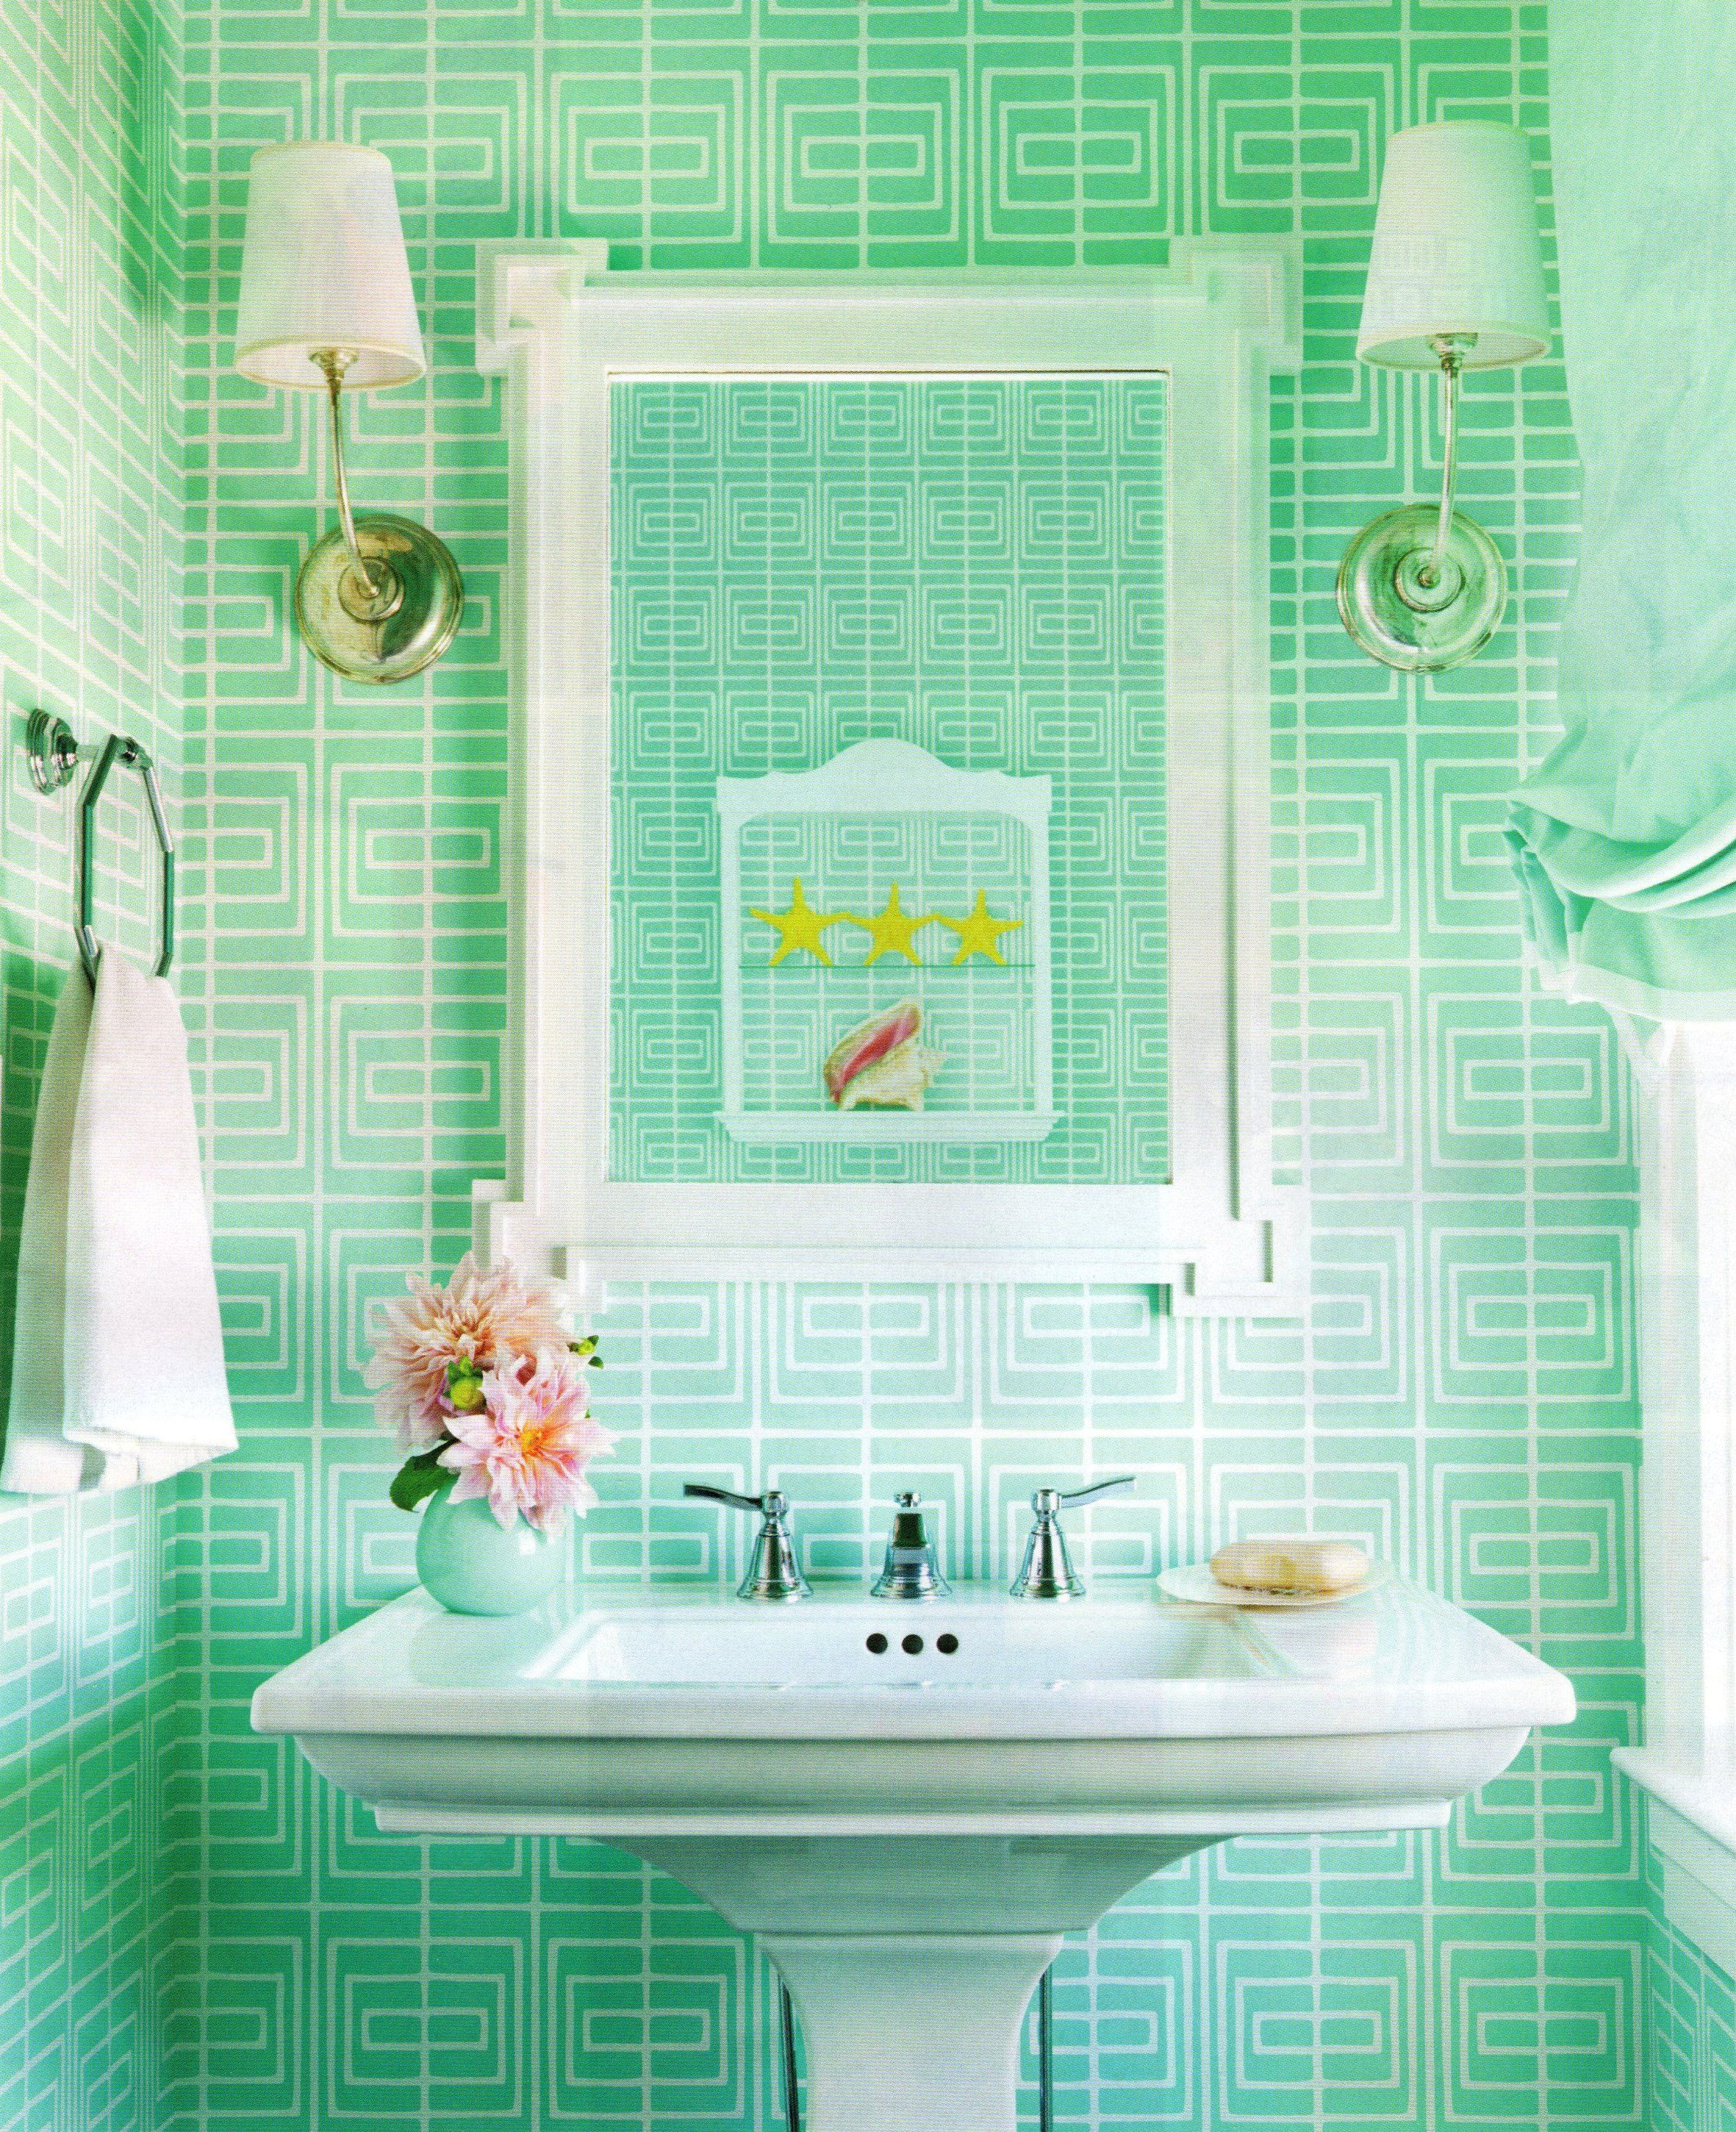 bright green bathroom tiles bring a pretty pop of fun. #colors